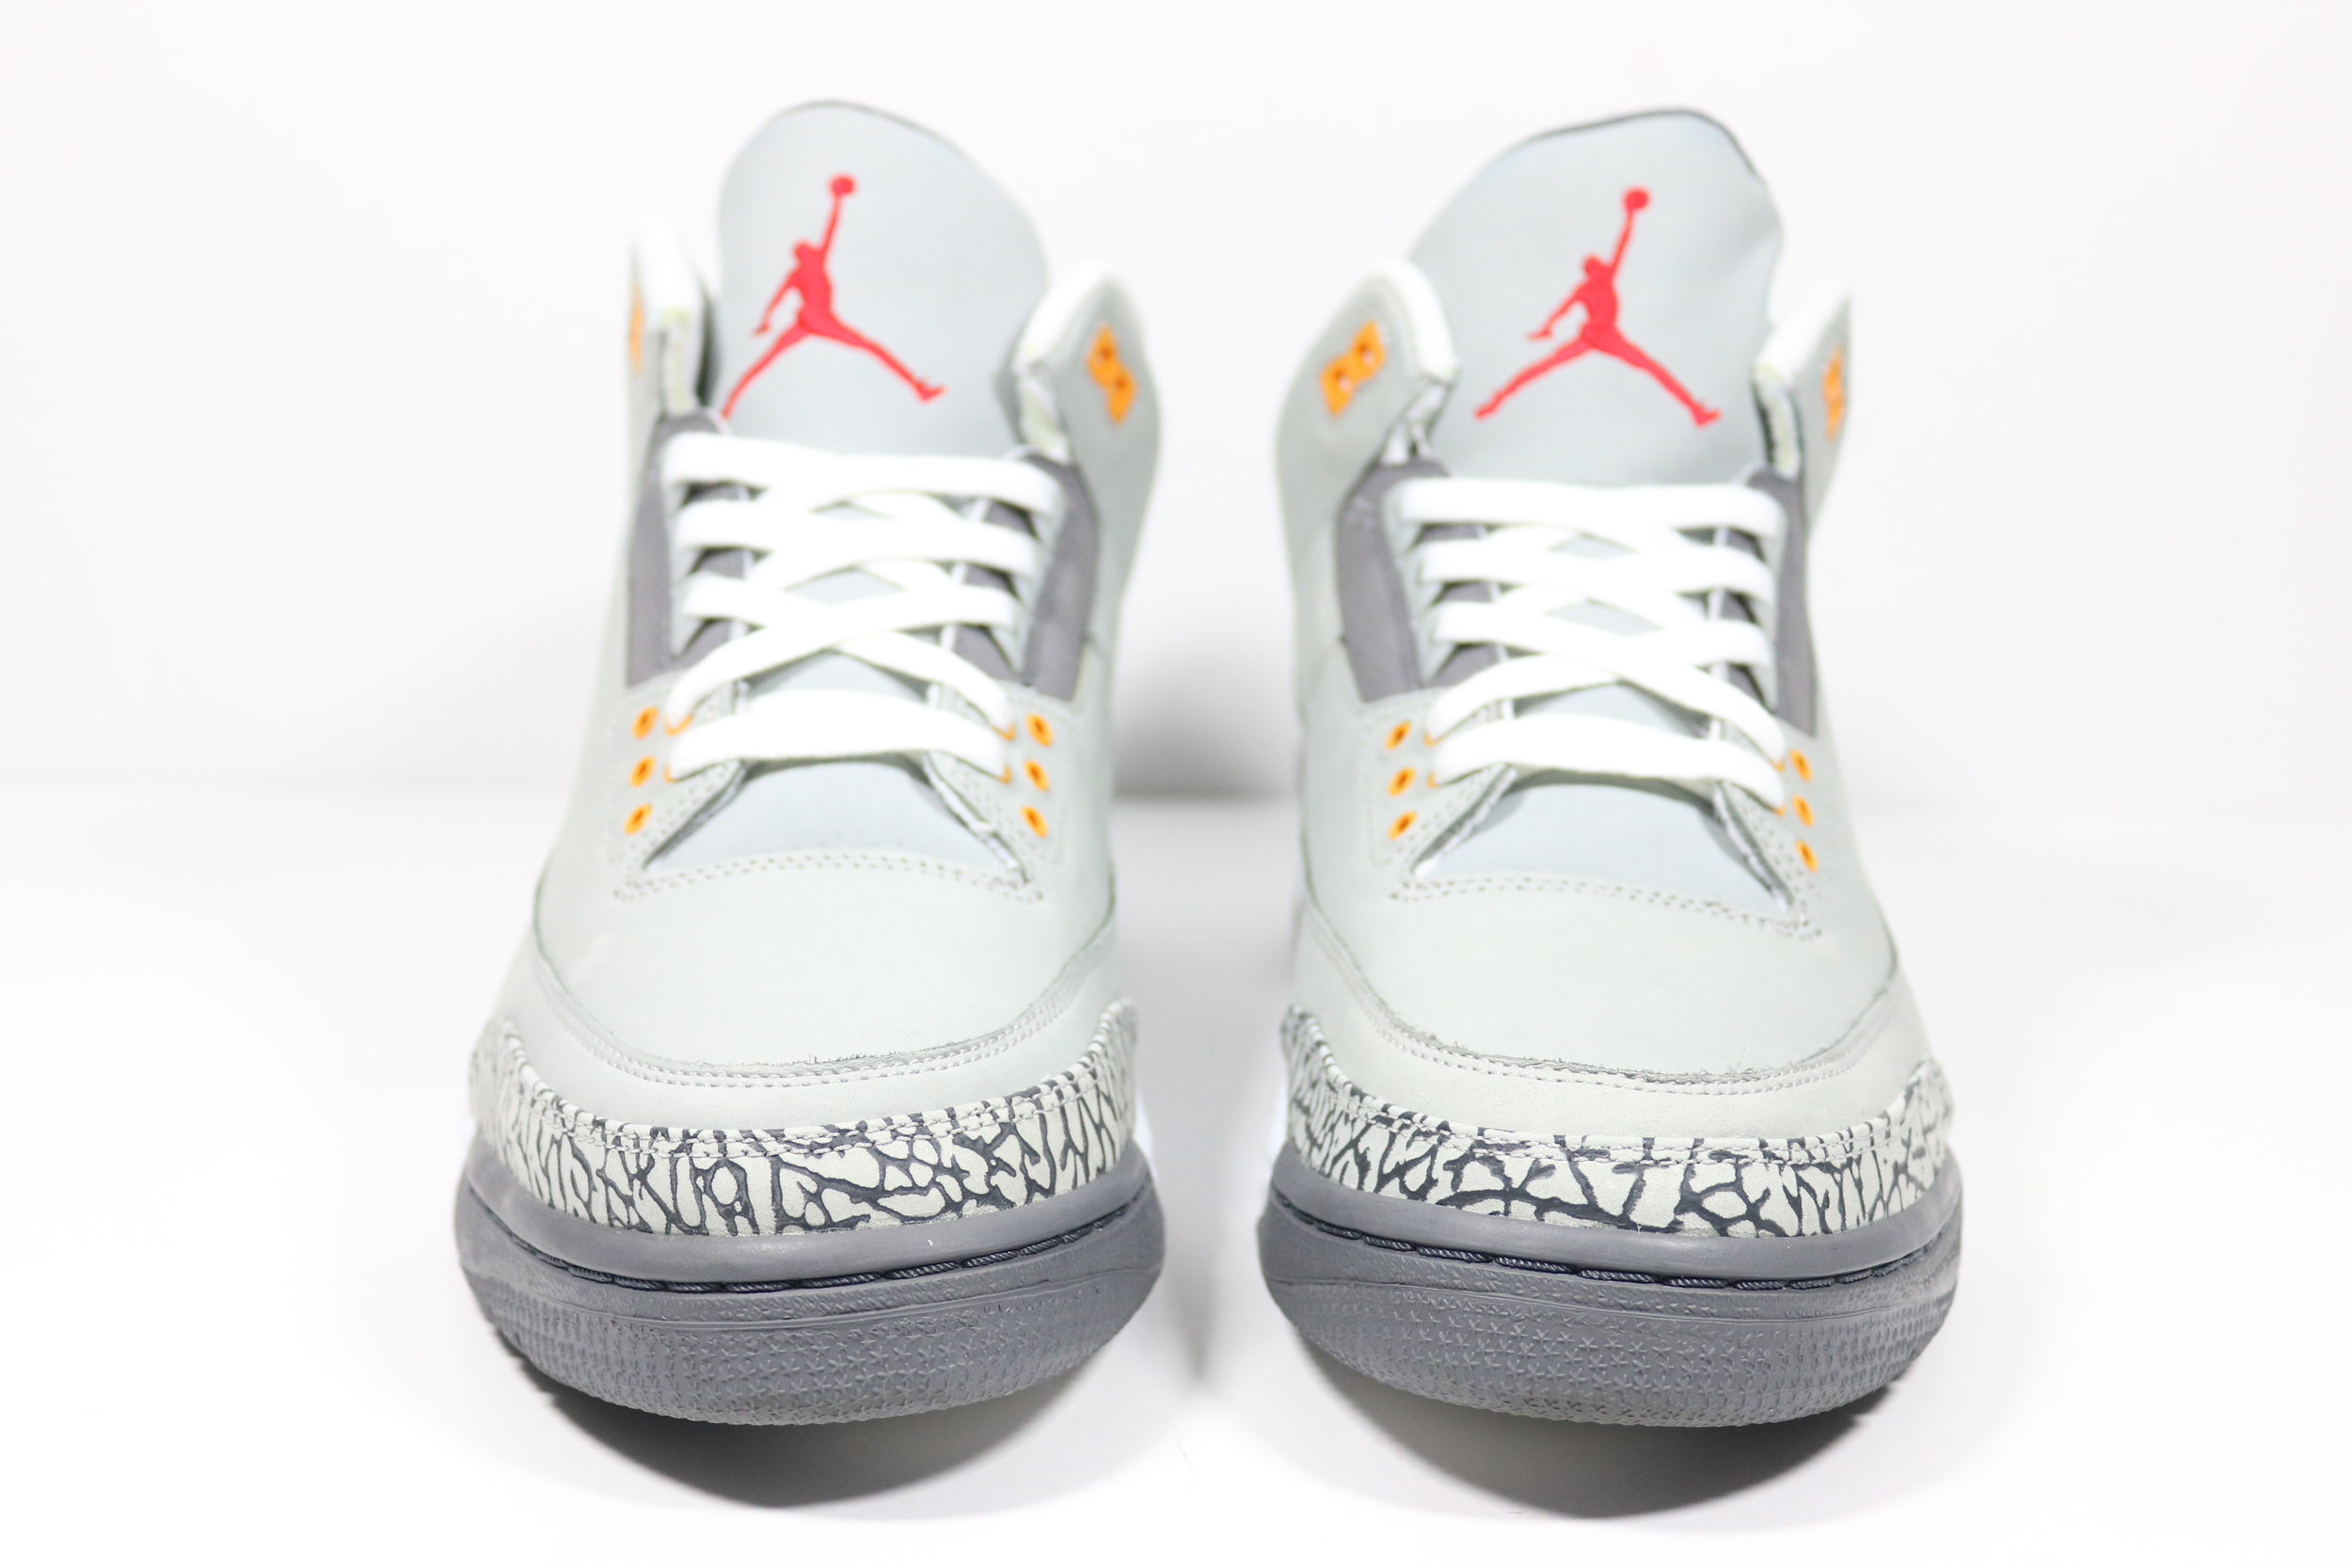 premium selection 46e8f 1385e US 11.0 - NIKE AIR JORDAN 3 RETRO LS